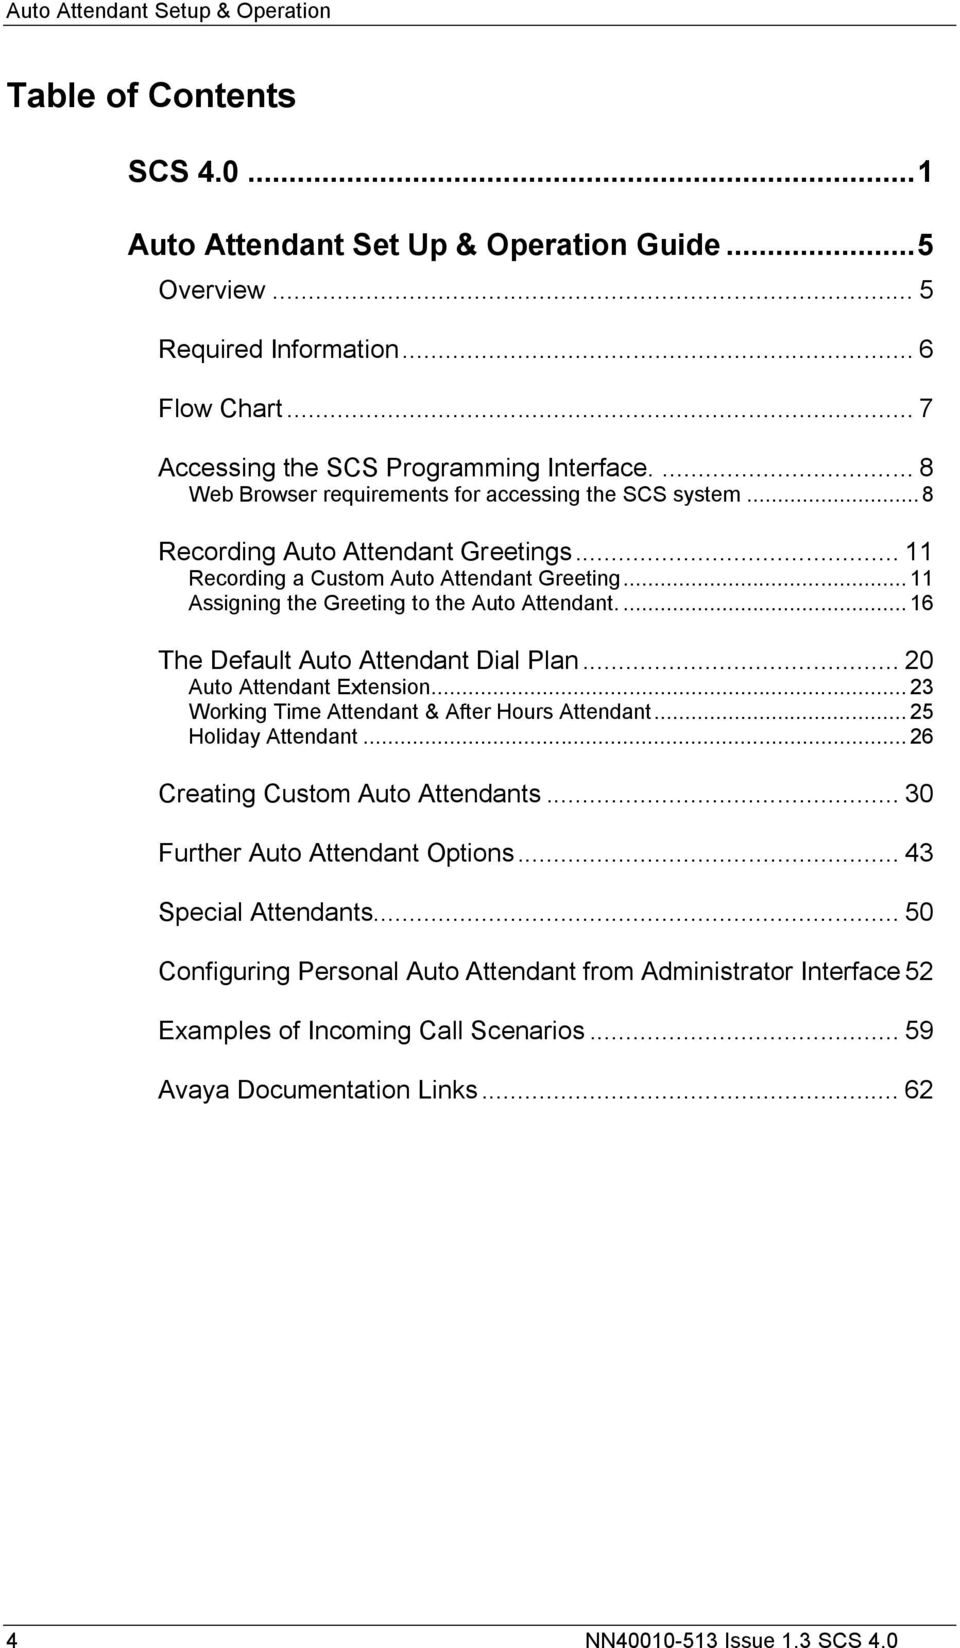 ... 16 The Default Auto Attendant Dial Plan... 20 Auto Attendant Extension... 23 Working Time Attendant & After Hours Attendant... 25 Holiday Attendant... 26 Creating Custom Auto Attendants.